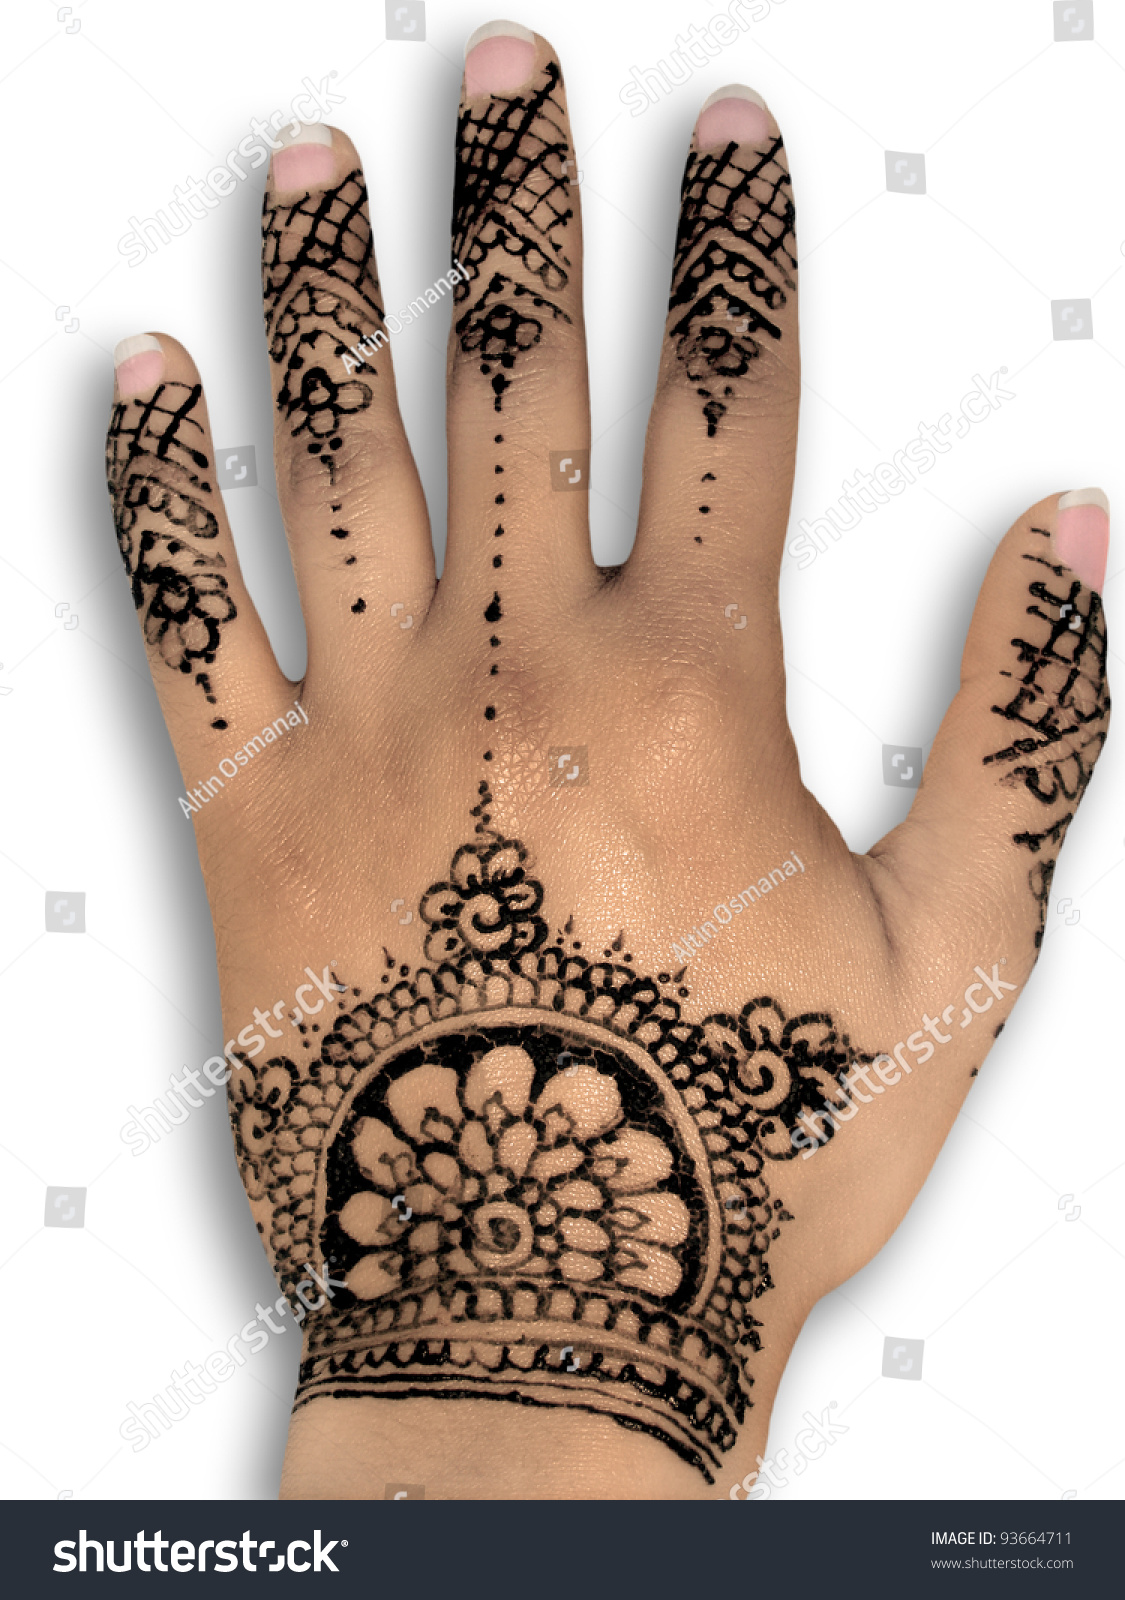 Tattoos Henna For Body: Henna Tattoo Body Art White Background Stock Photo